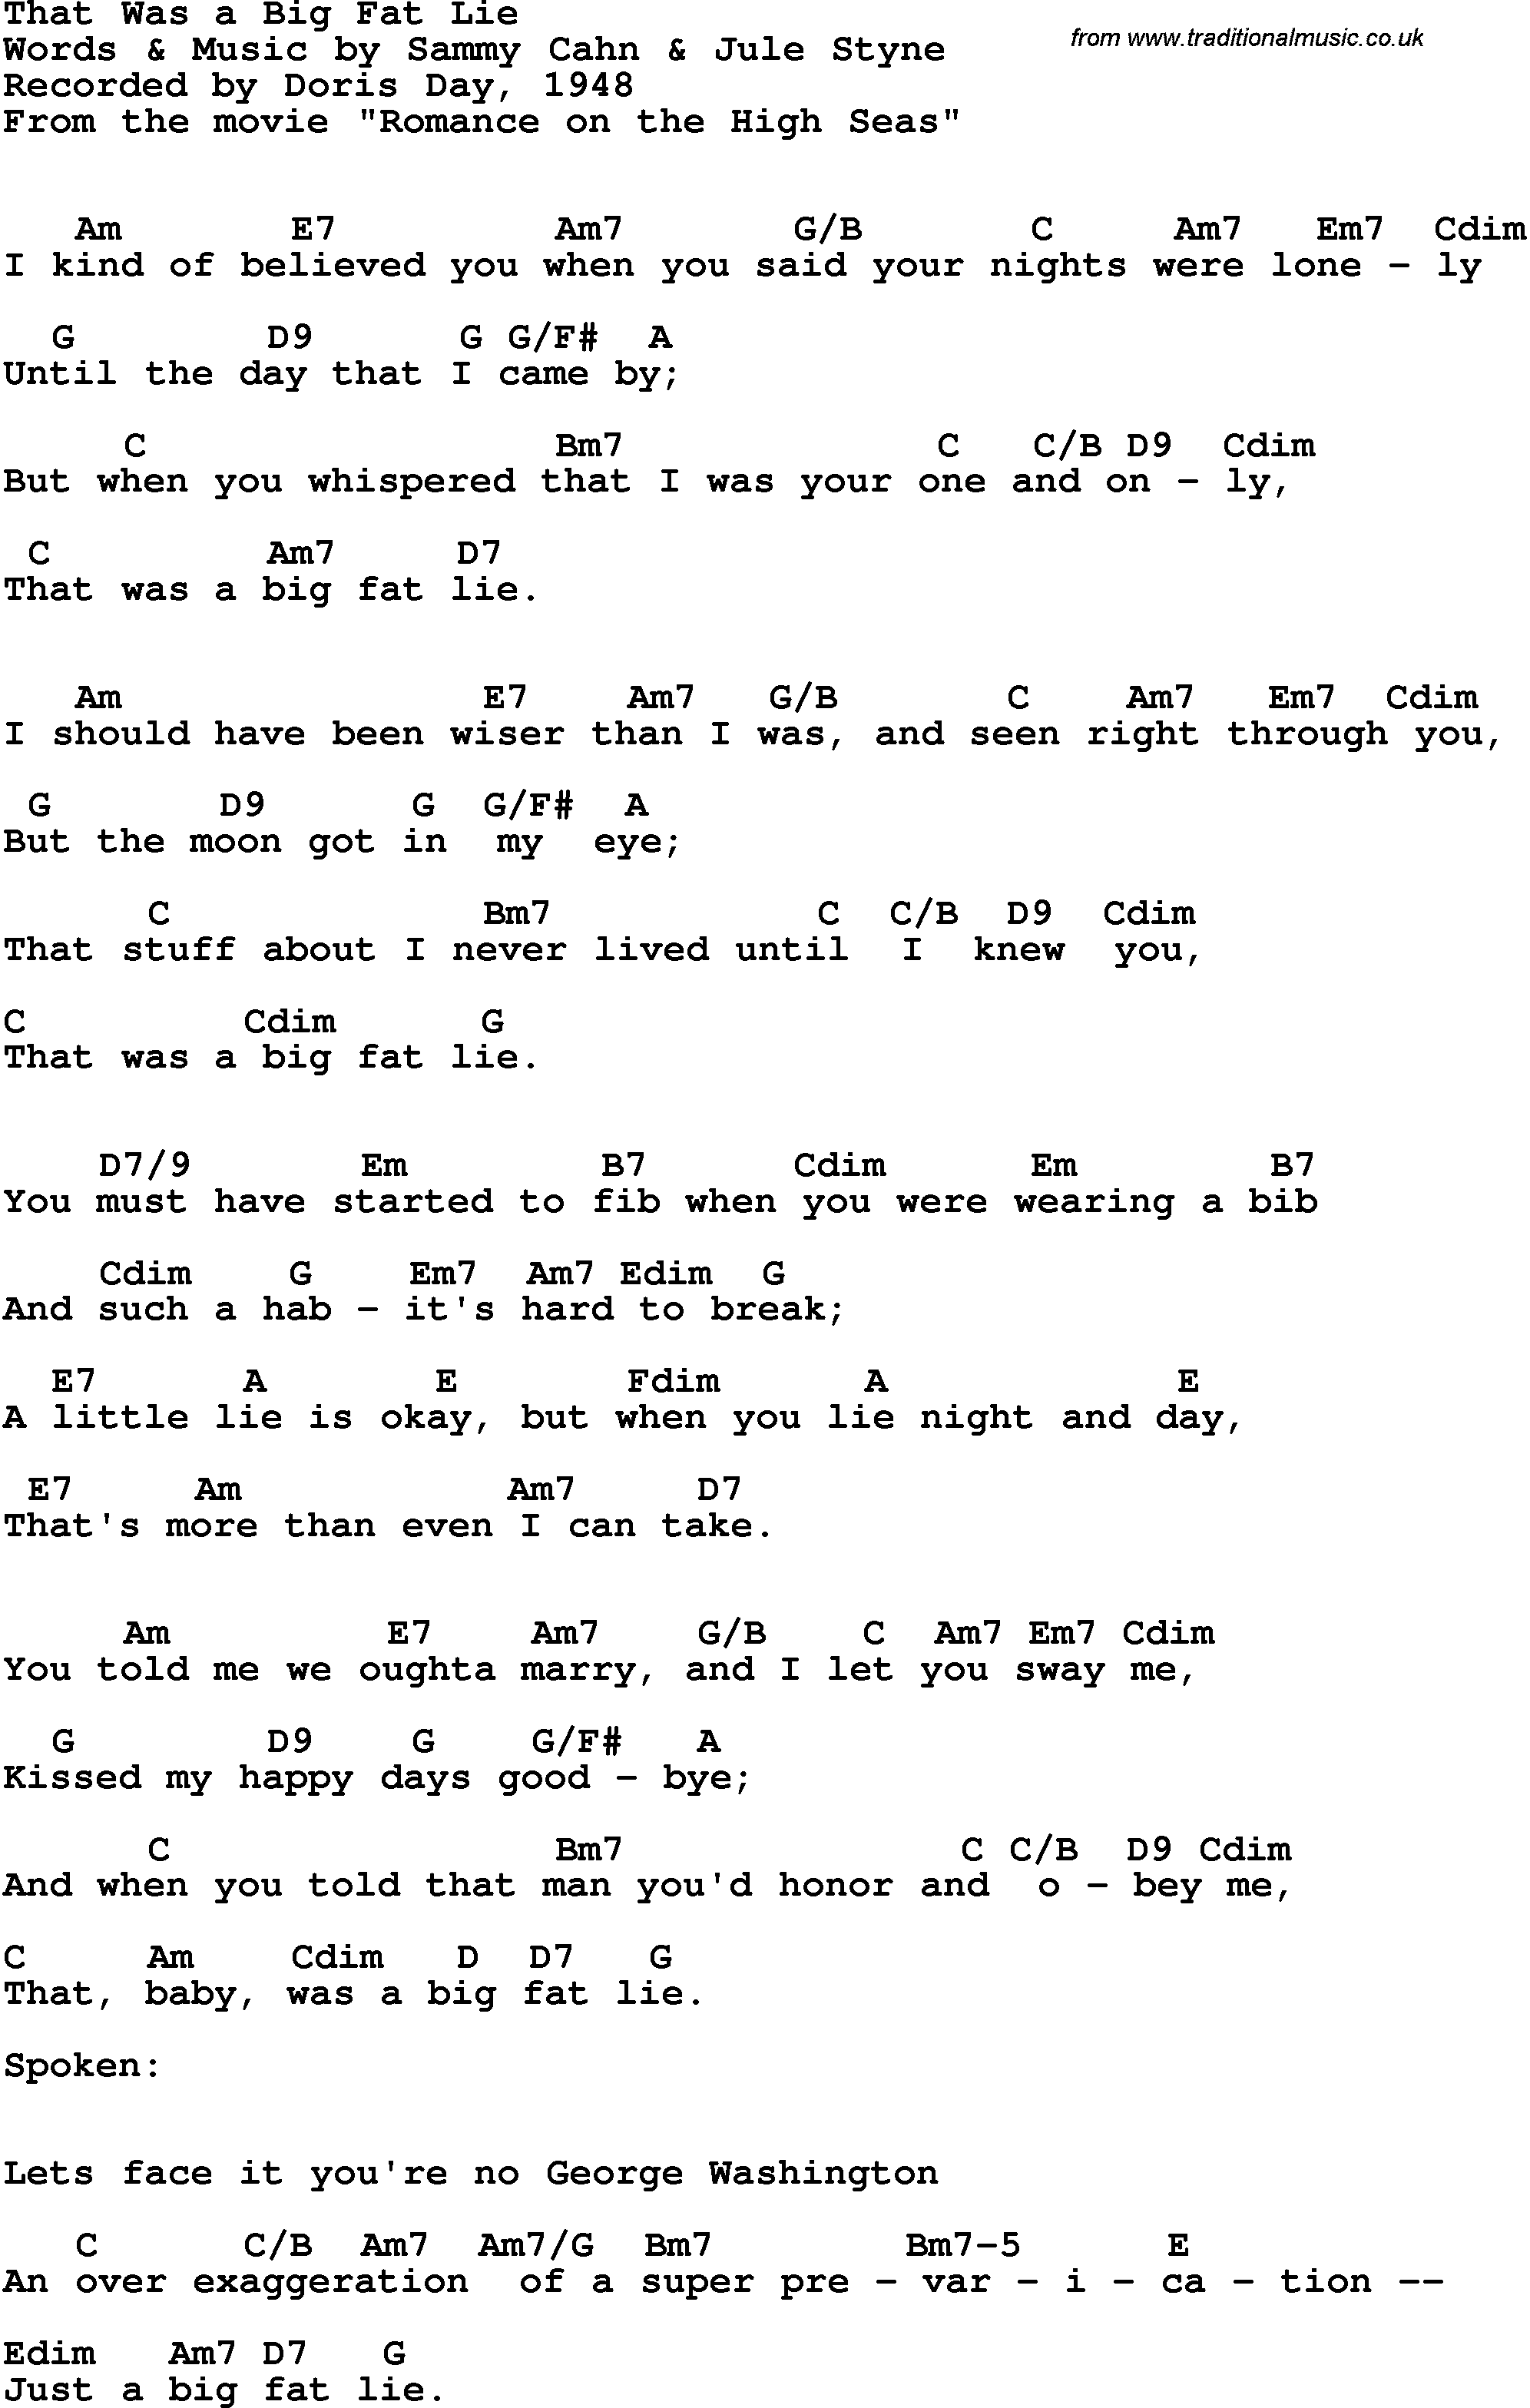 Song Lyrics With Guitar Chords For That Was A Big Fat Lie Doris